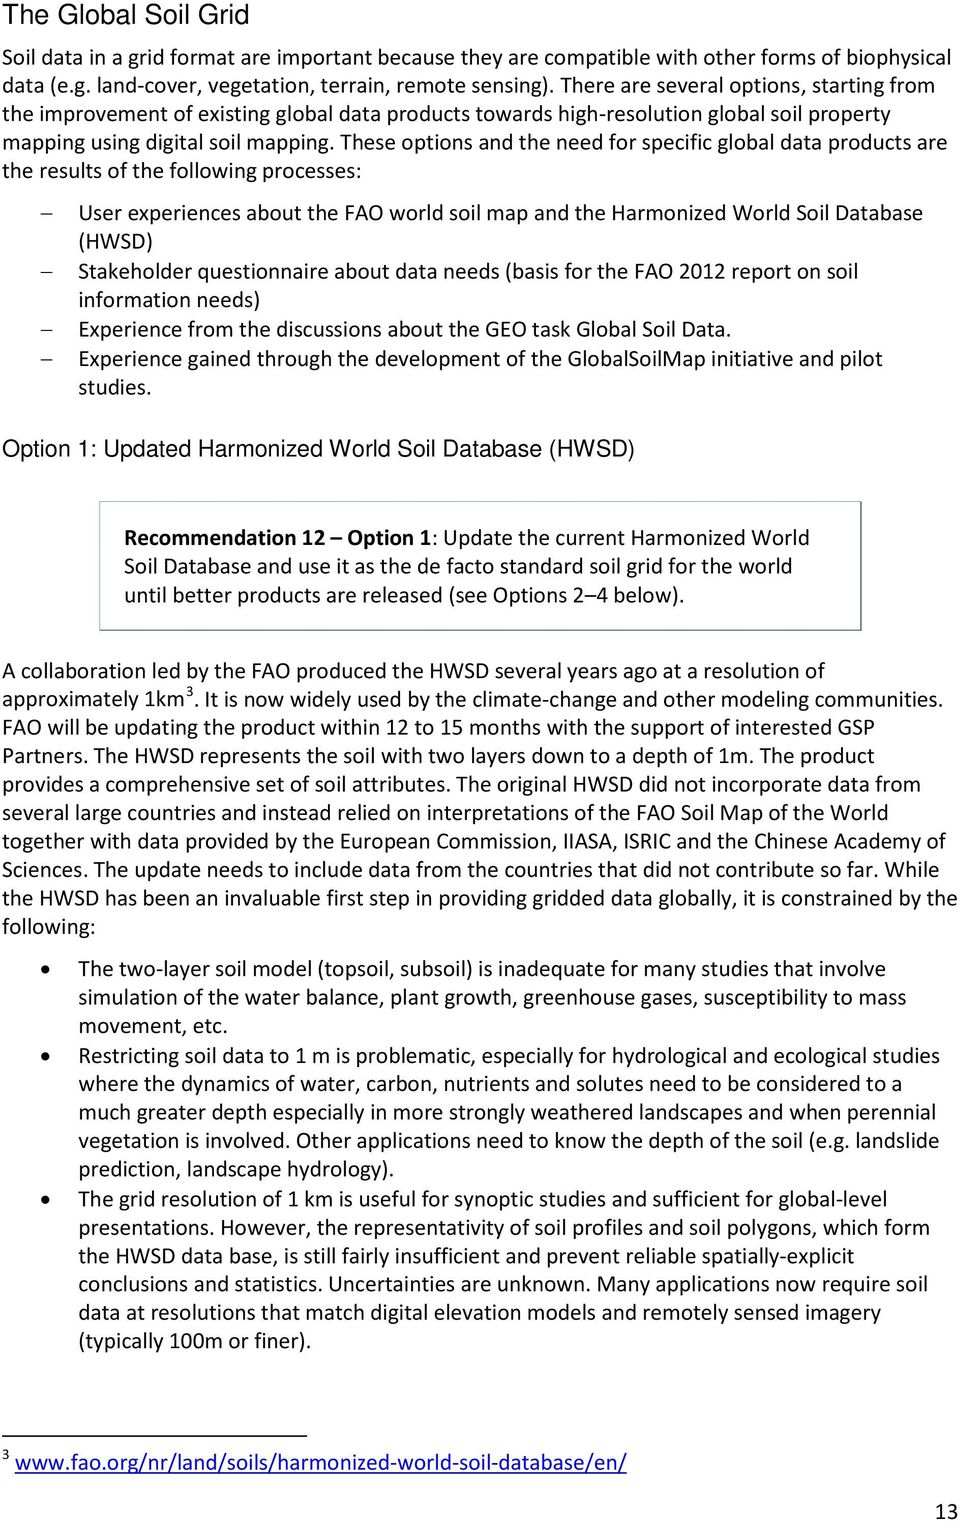 These options and the need for specific global data products are the results of the following processes: User experiences about the FAO world soil map and the Harmonized World Soil Database (HWSD)